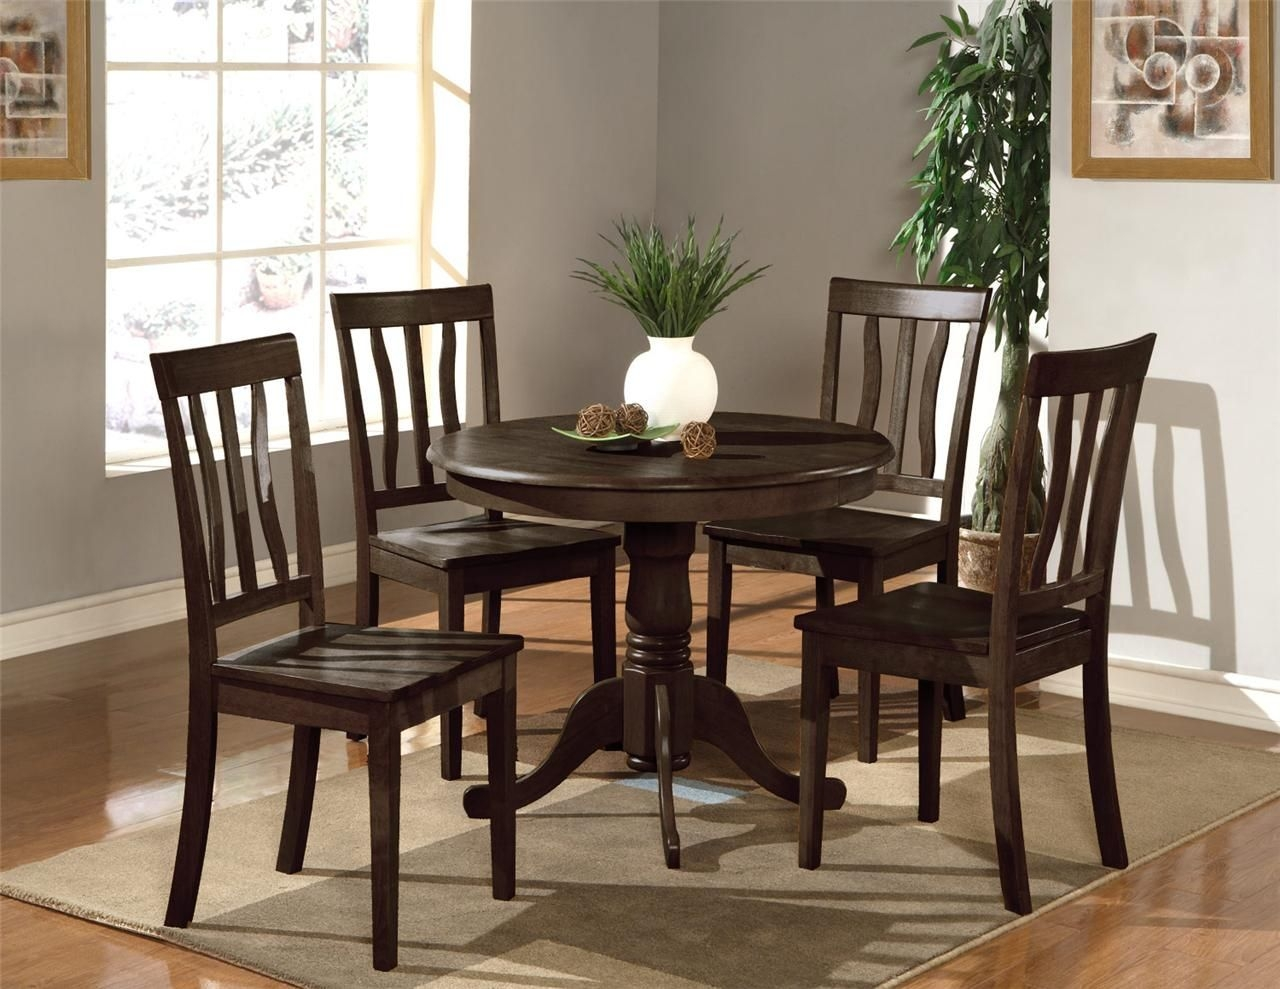 "5Pc Dinette Kitchen Set 36"" Round Table With 4 Wood Seat Chairs In Cappuccino  Ebay"